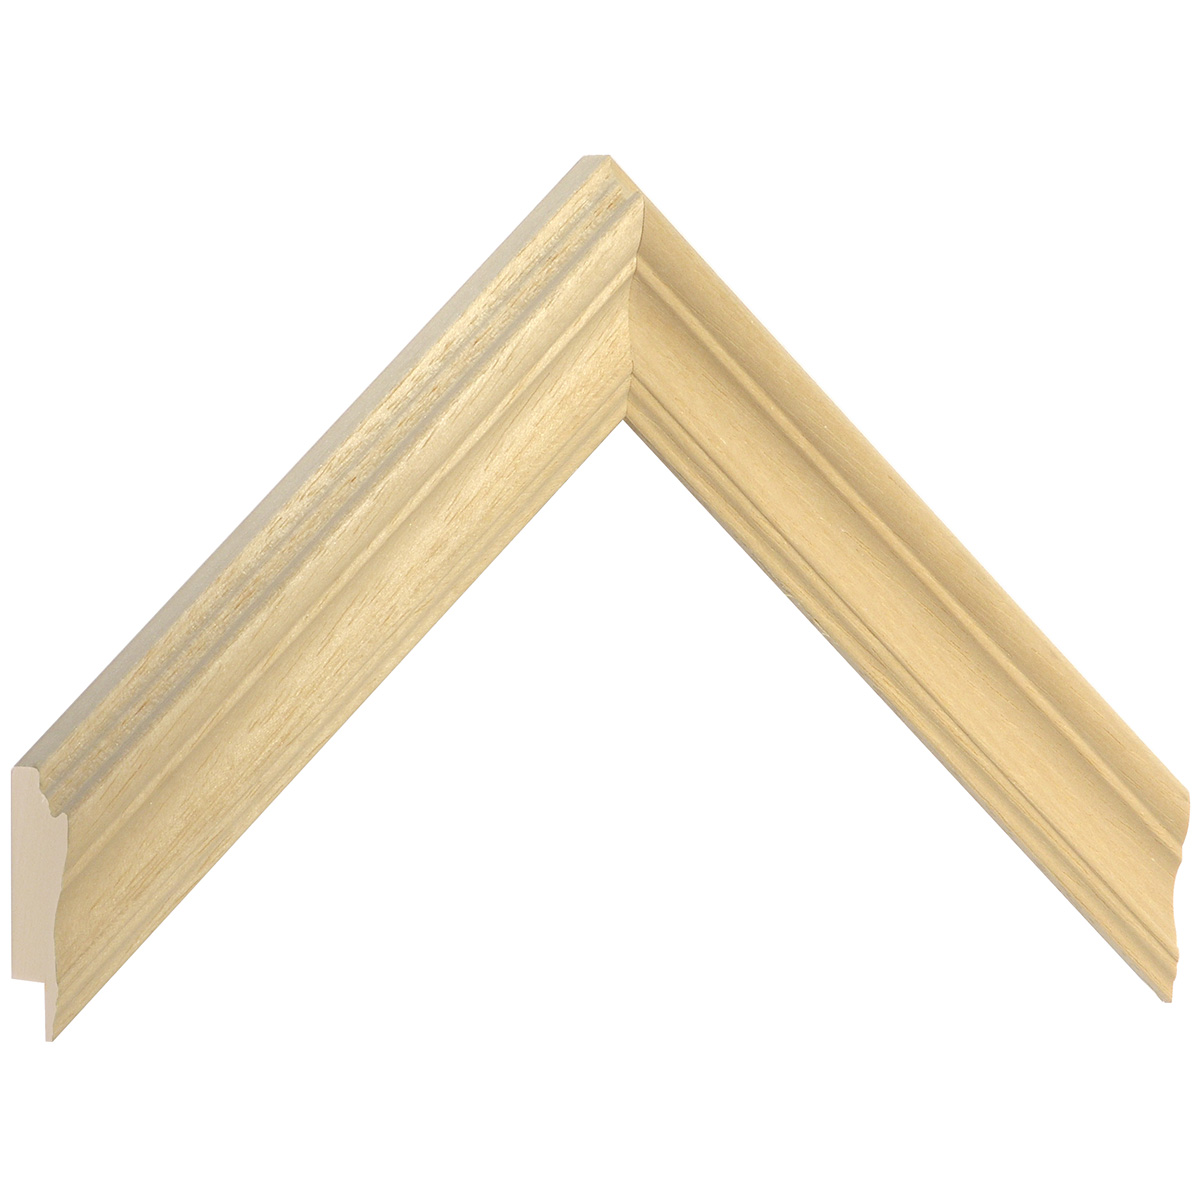 Moulding ayous, width 33mm, height 30mm, bare timber